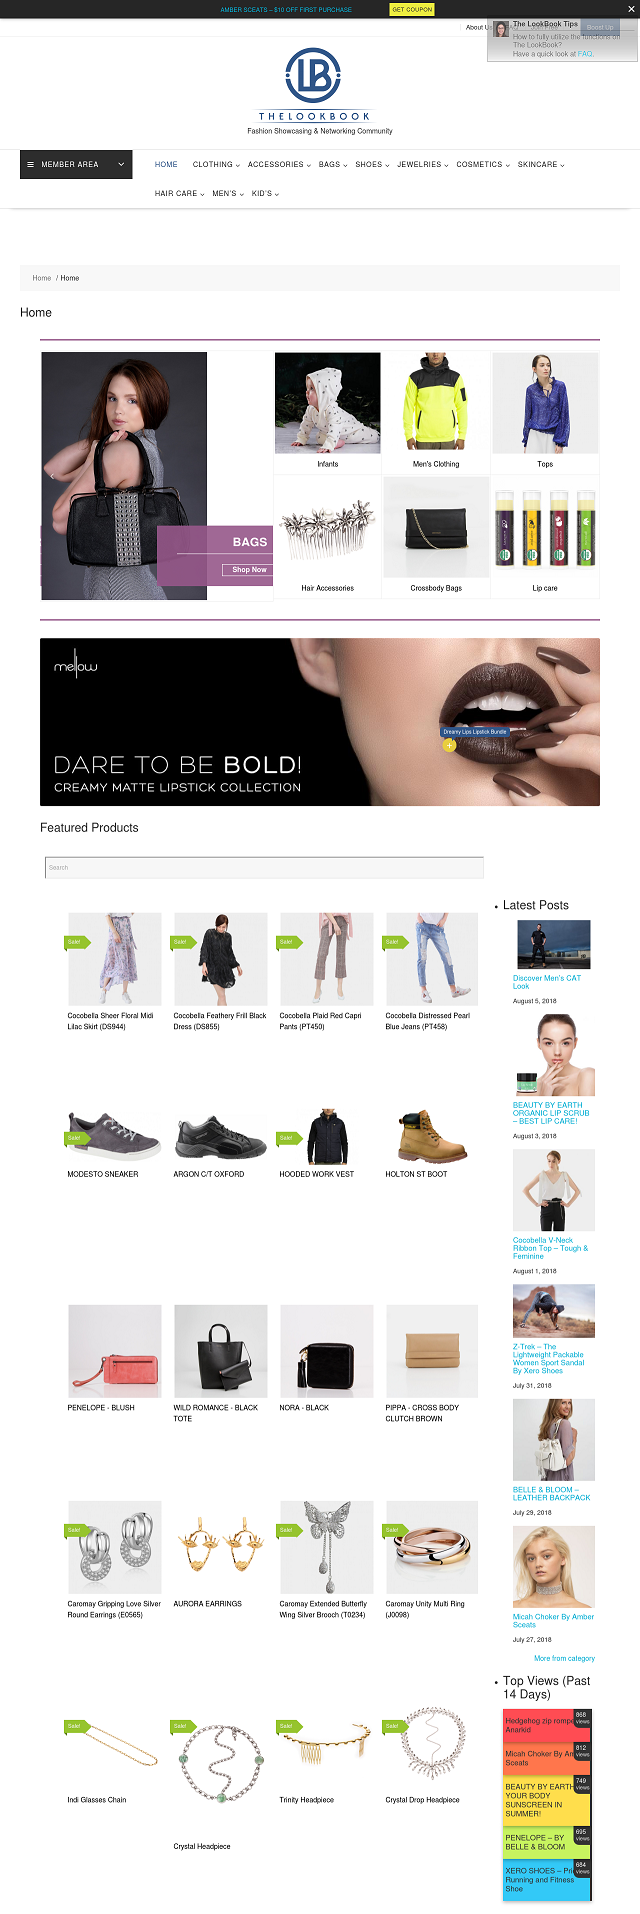 upload 20 products to showcase on The LookBook with 2 extra free boost-up posts